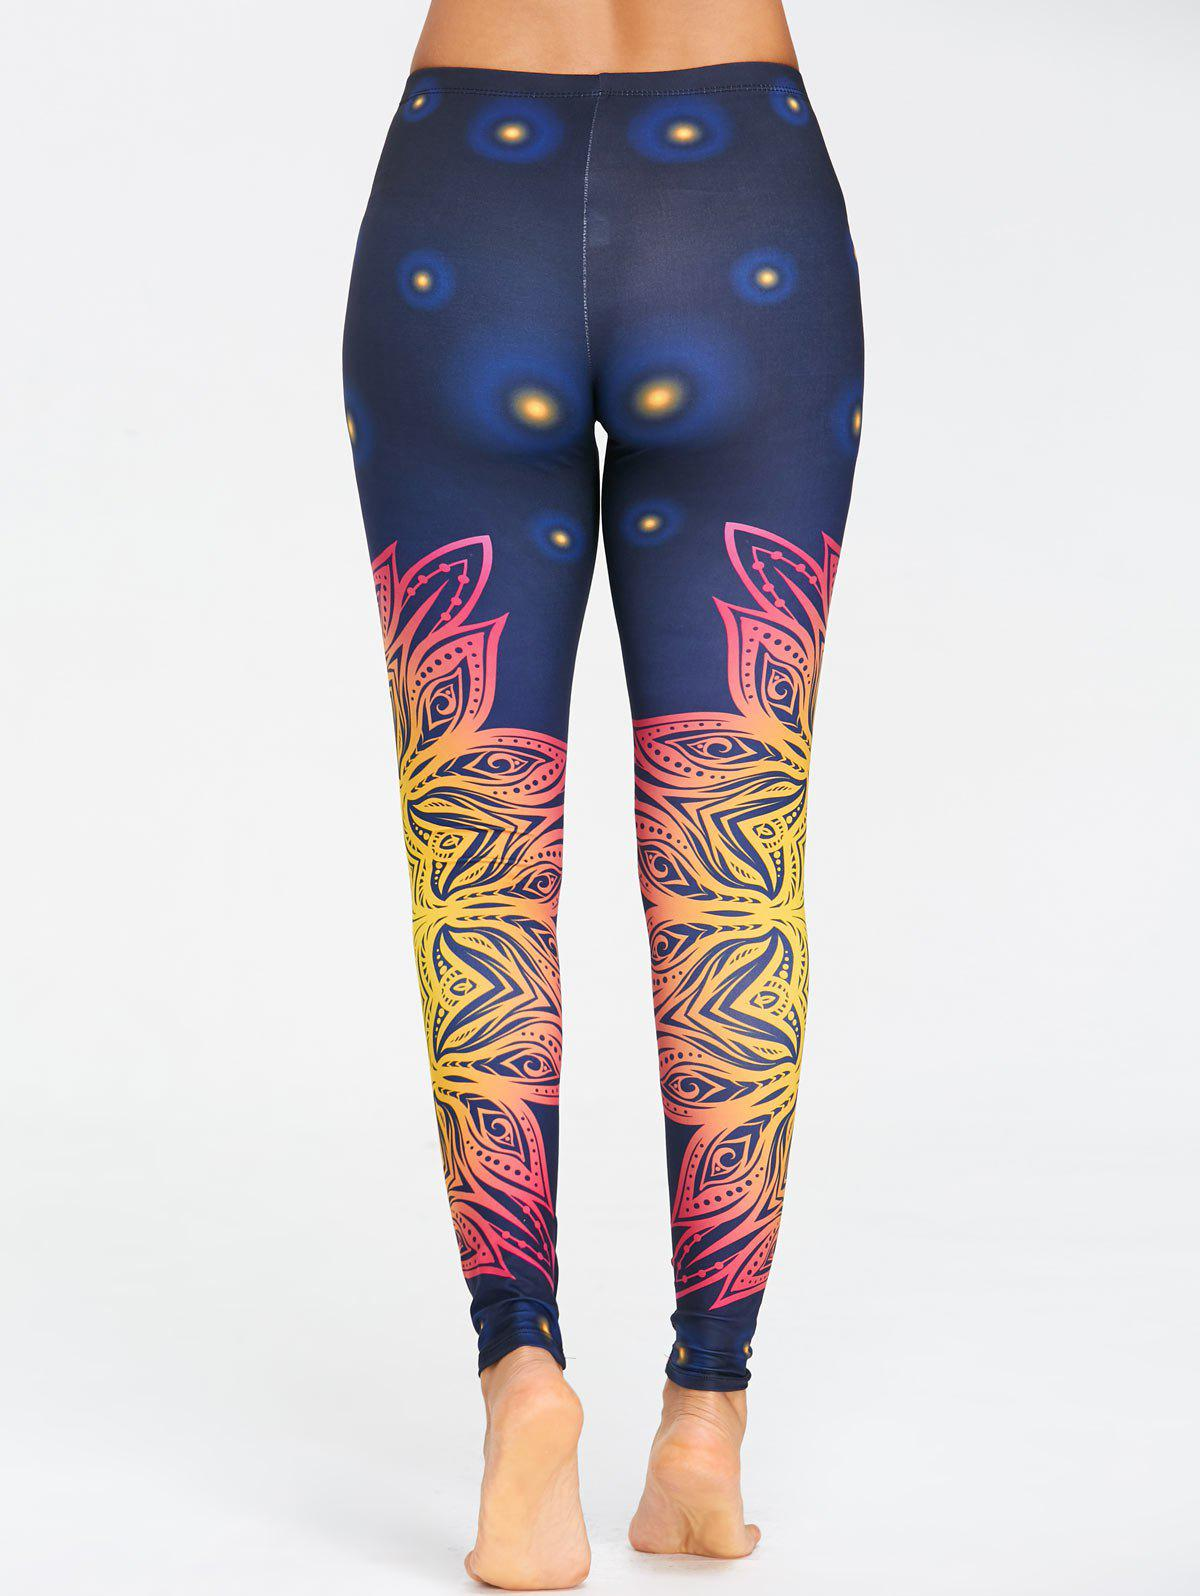 Yoga Floral Print Ombre Leggings - COLORFUL XL